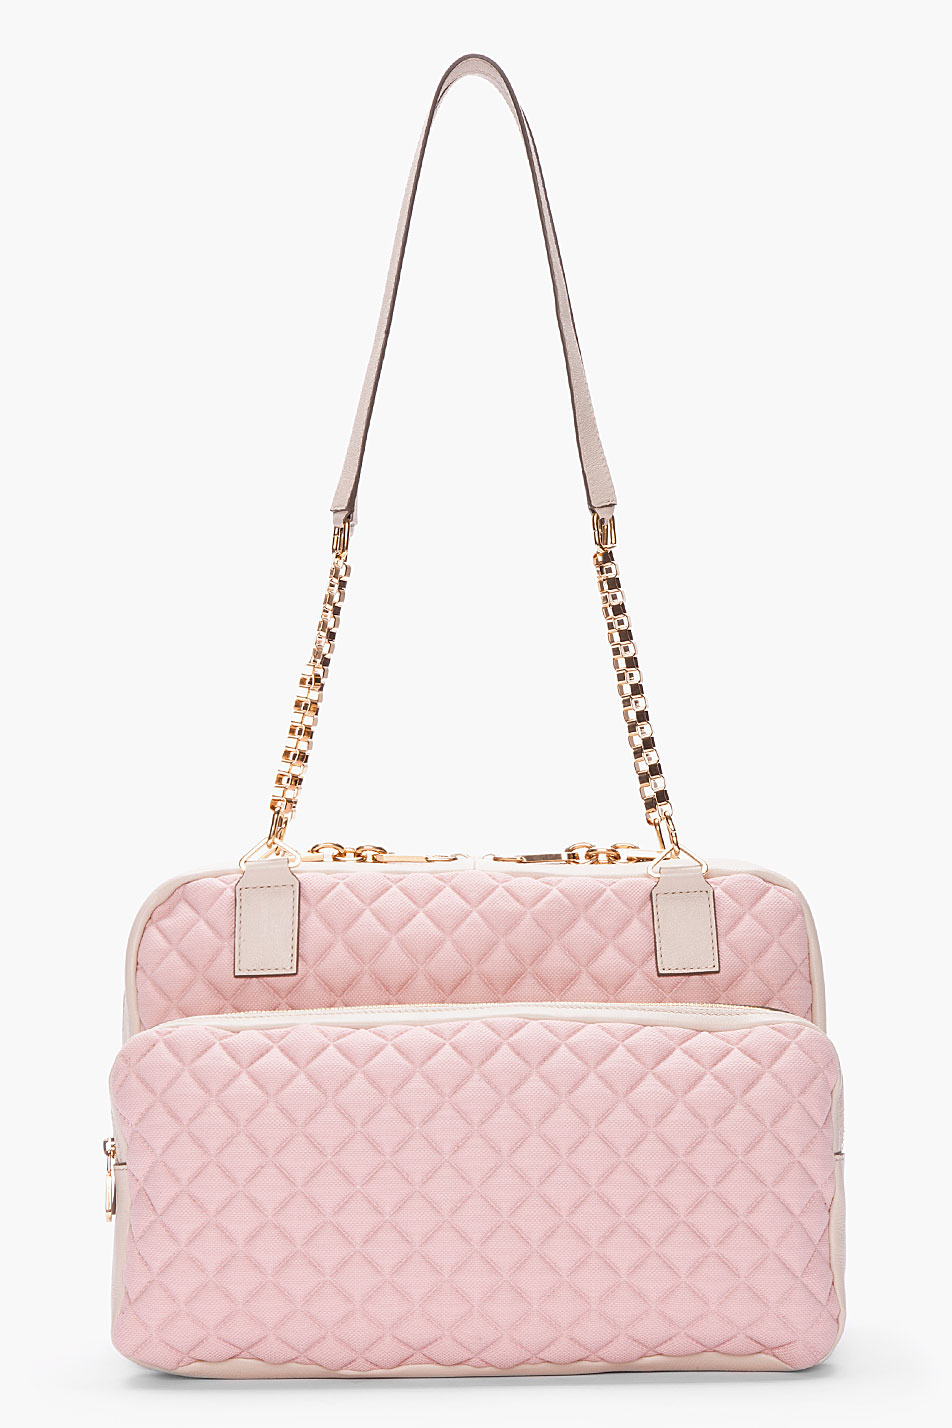 Chlo¨¦ Pale Pink Leathertrimmed Lucy Bag in Pink | Lyst